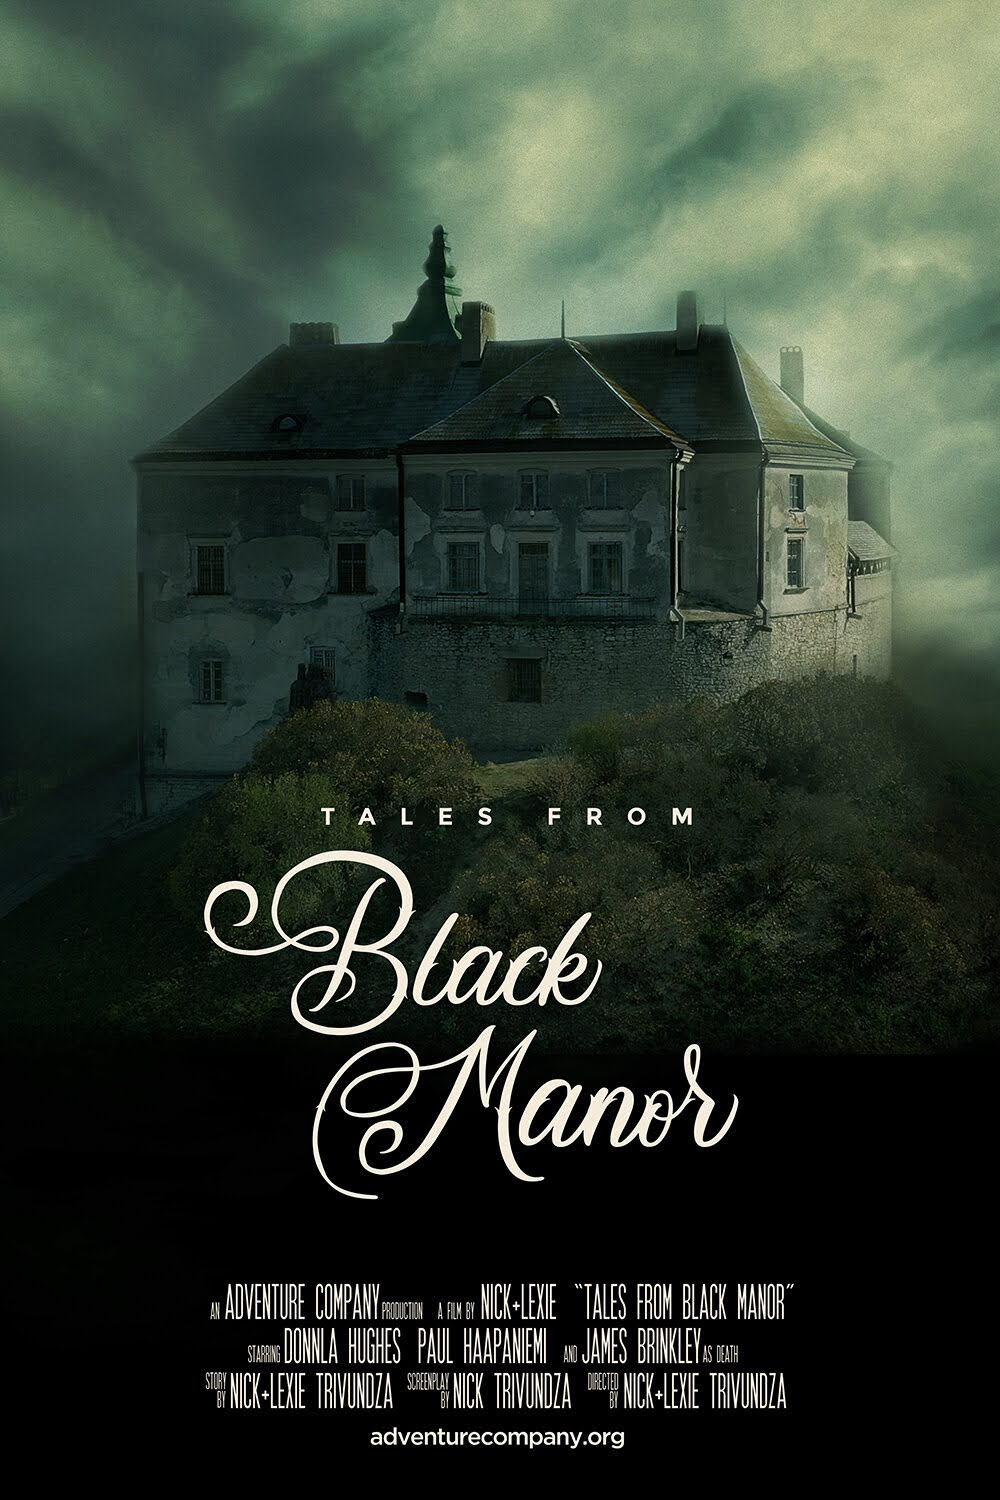 Tales from Black Manor